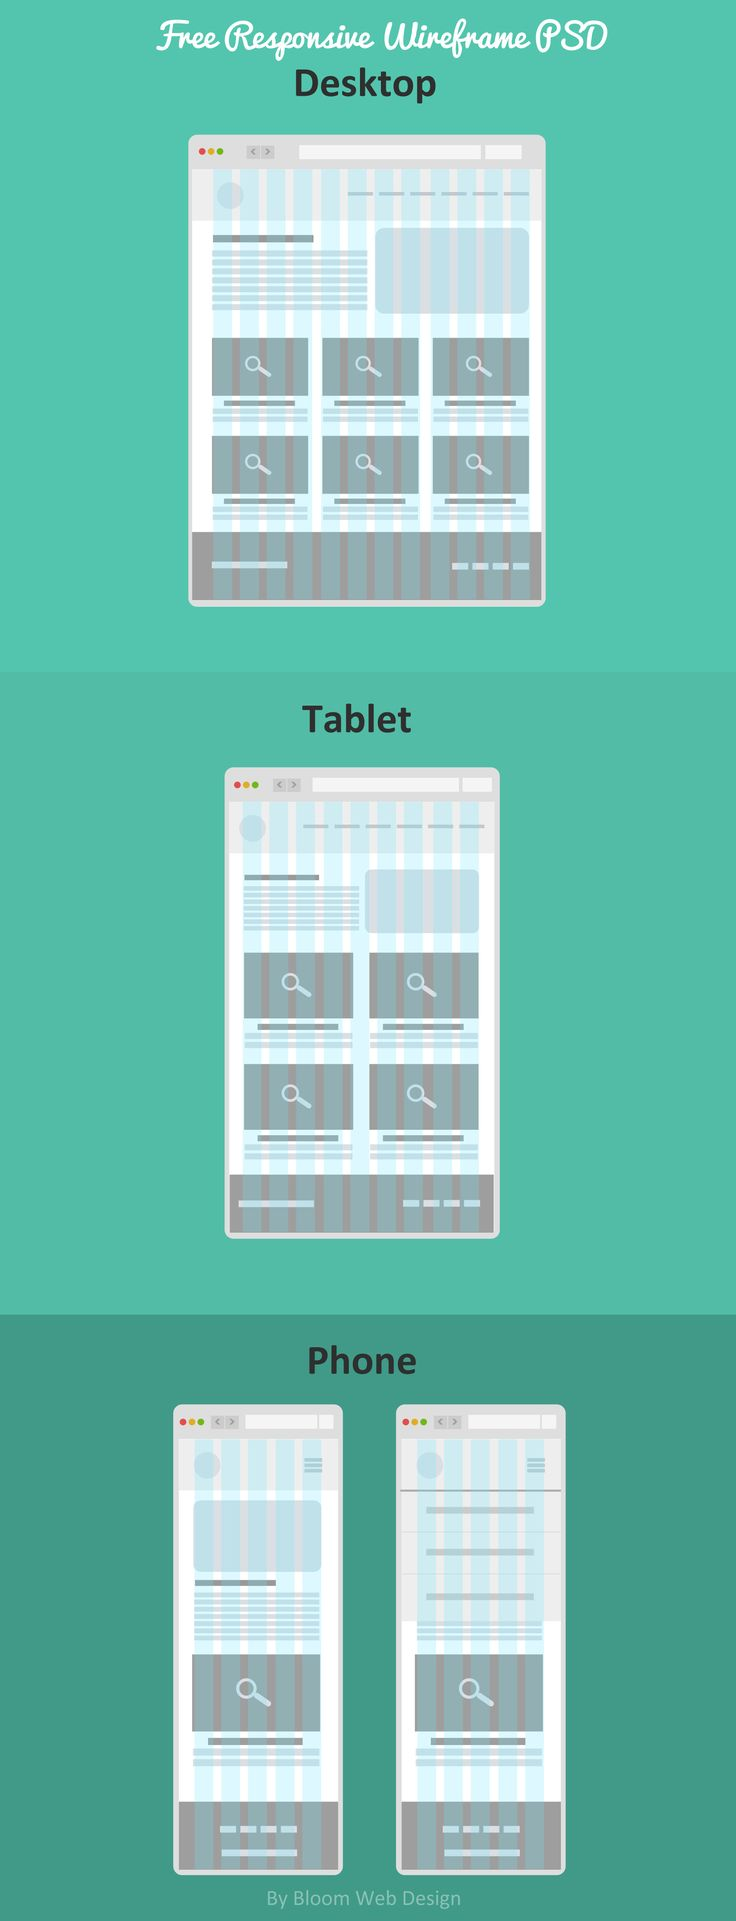 Today's freebie isFree Responsive Wireframe PSD. ThisFree Responsive Wireframe PSD Template was created using a Flat style and contains neatly arranged layers making it easy for you to edit and make it your own. ThisFree